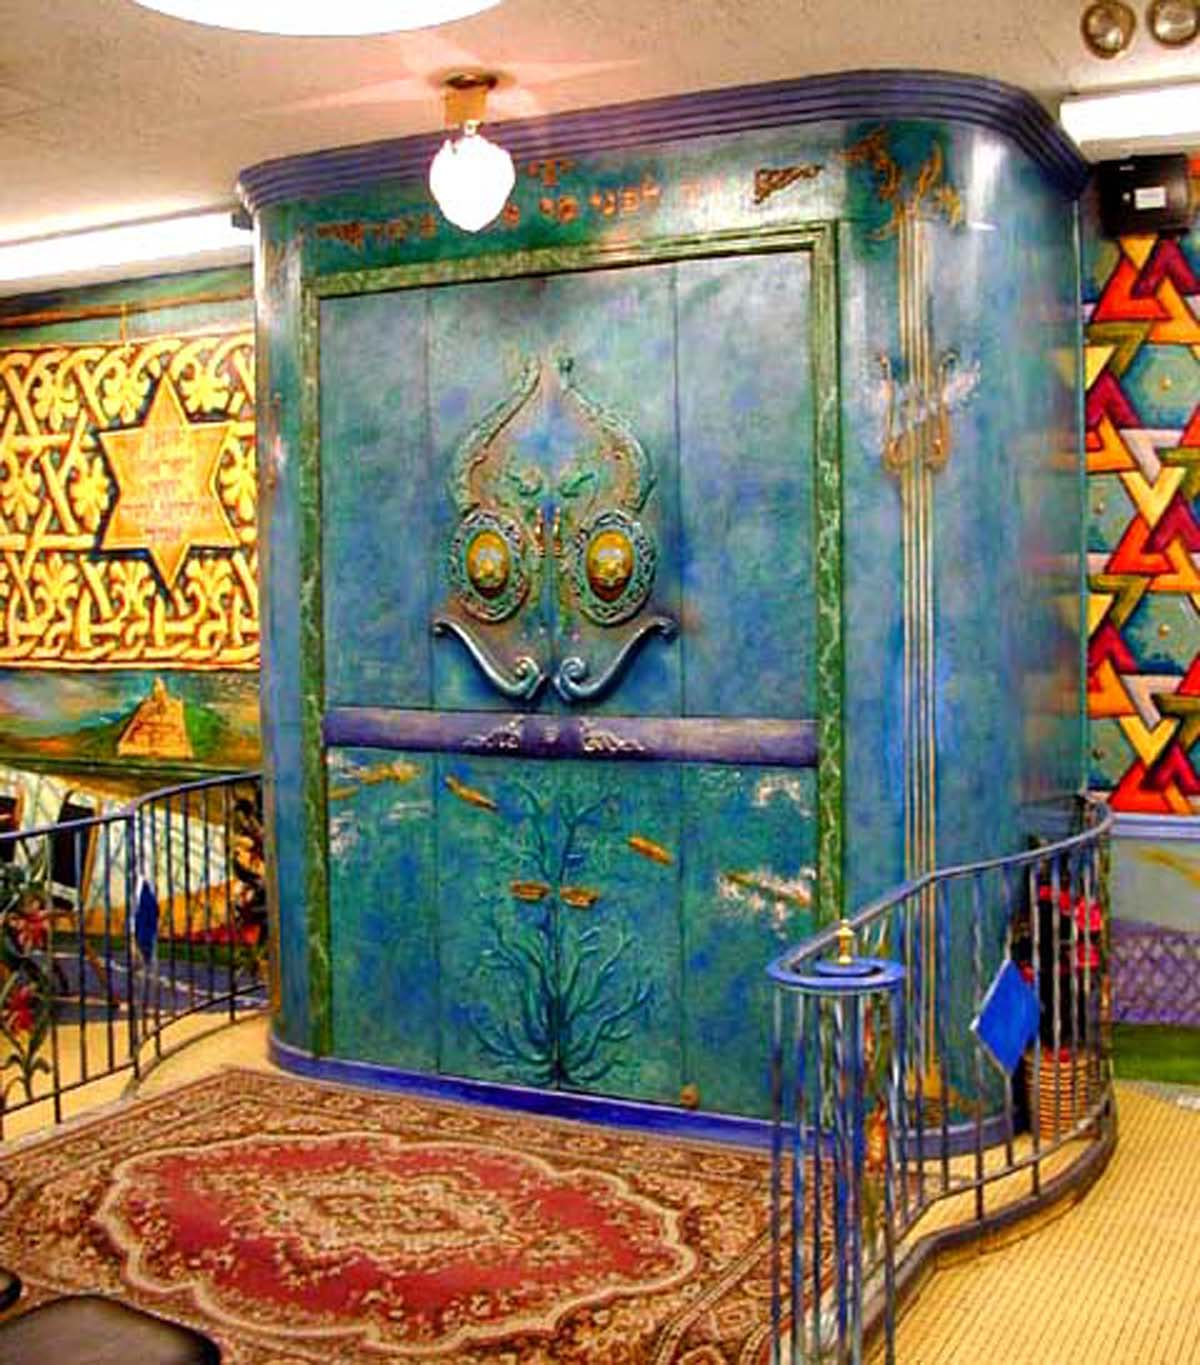 Torah Ark by Archie Rand (1978) B'nai Yosef Synagogue, Brooklyn, New York